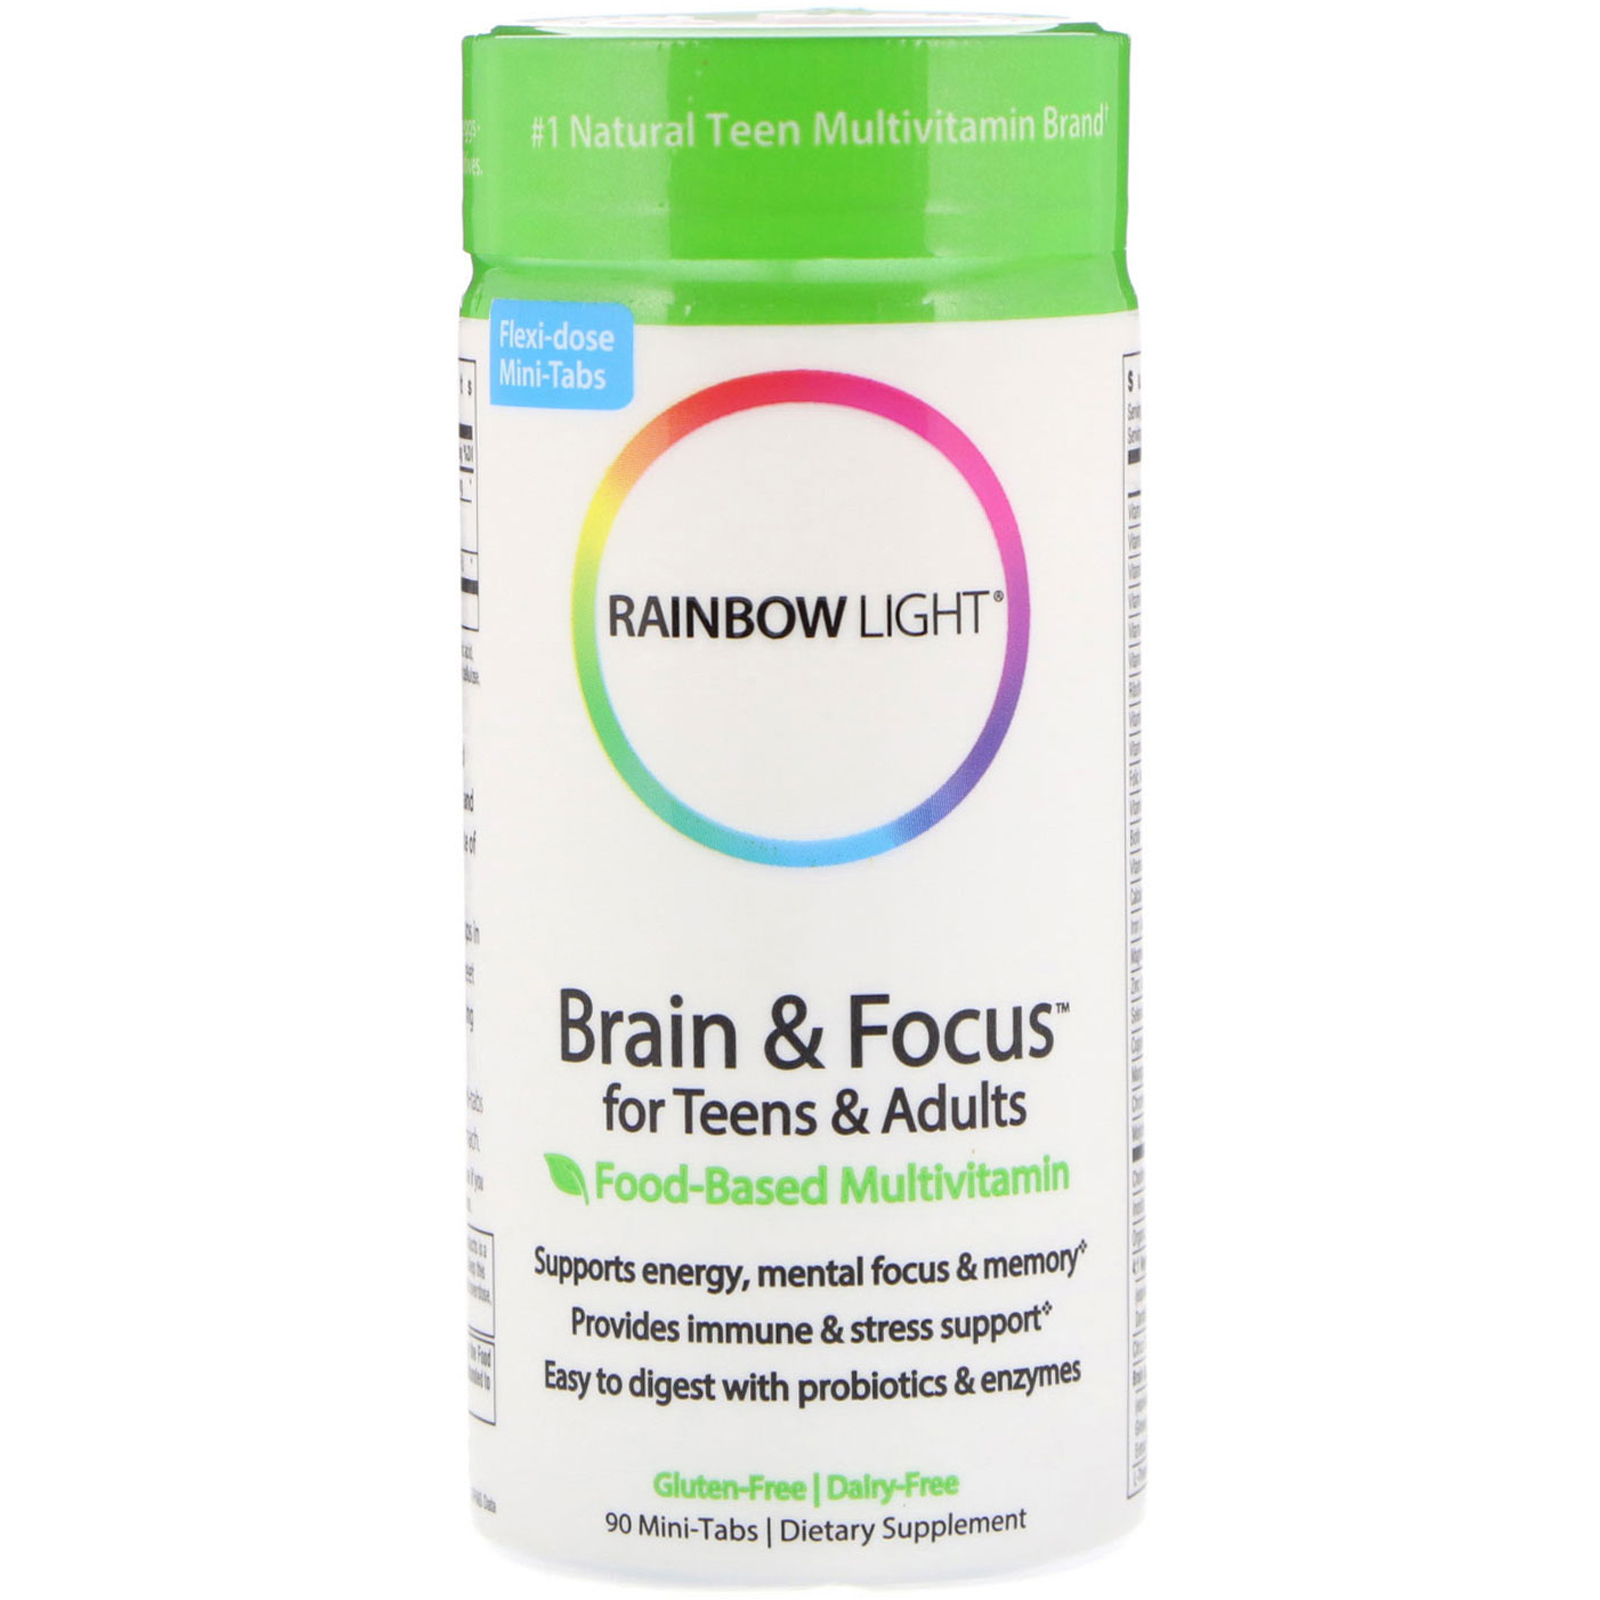 Brain & Focus Multivitamin for Teens & Adults – 90 tablets